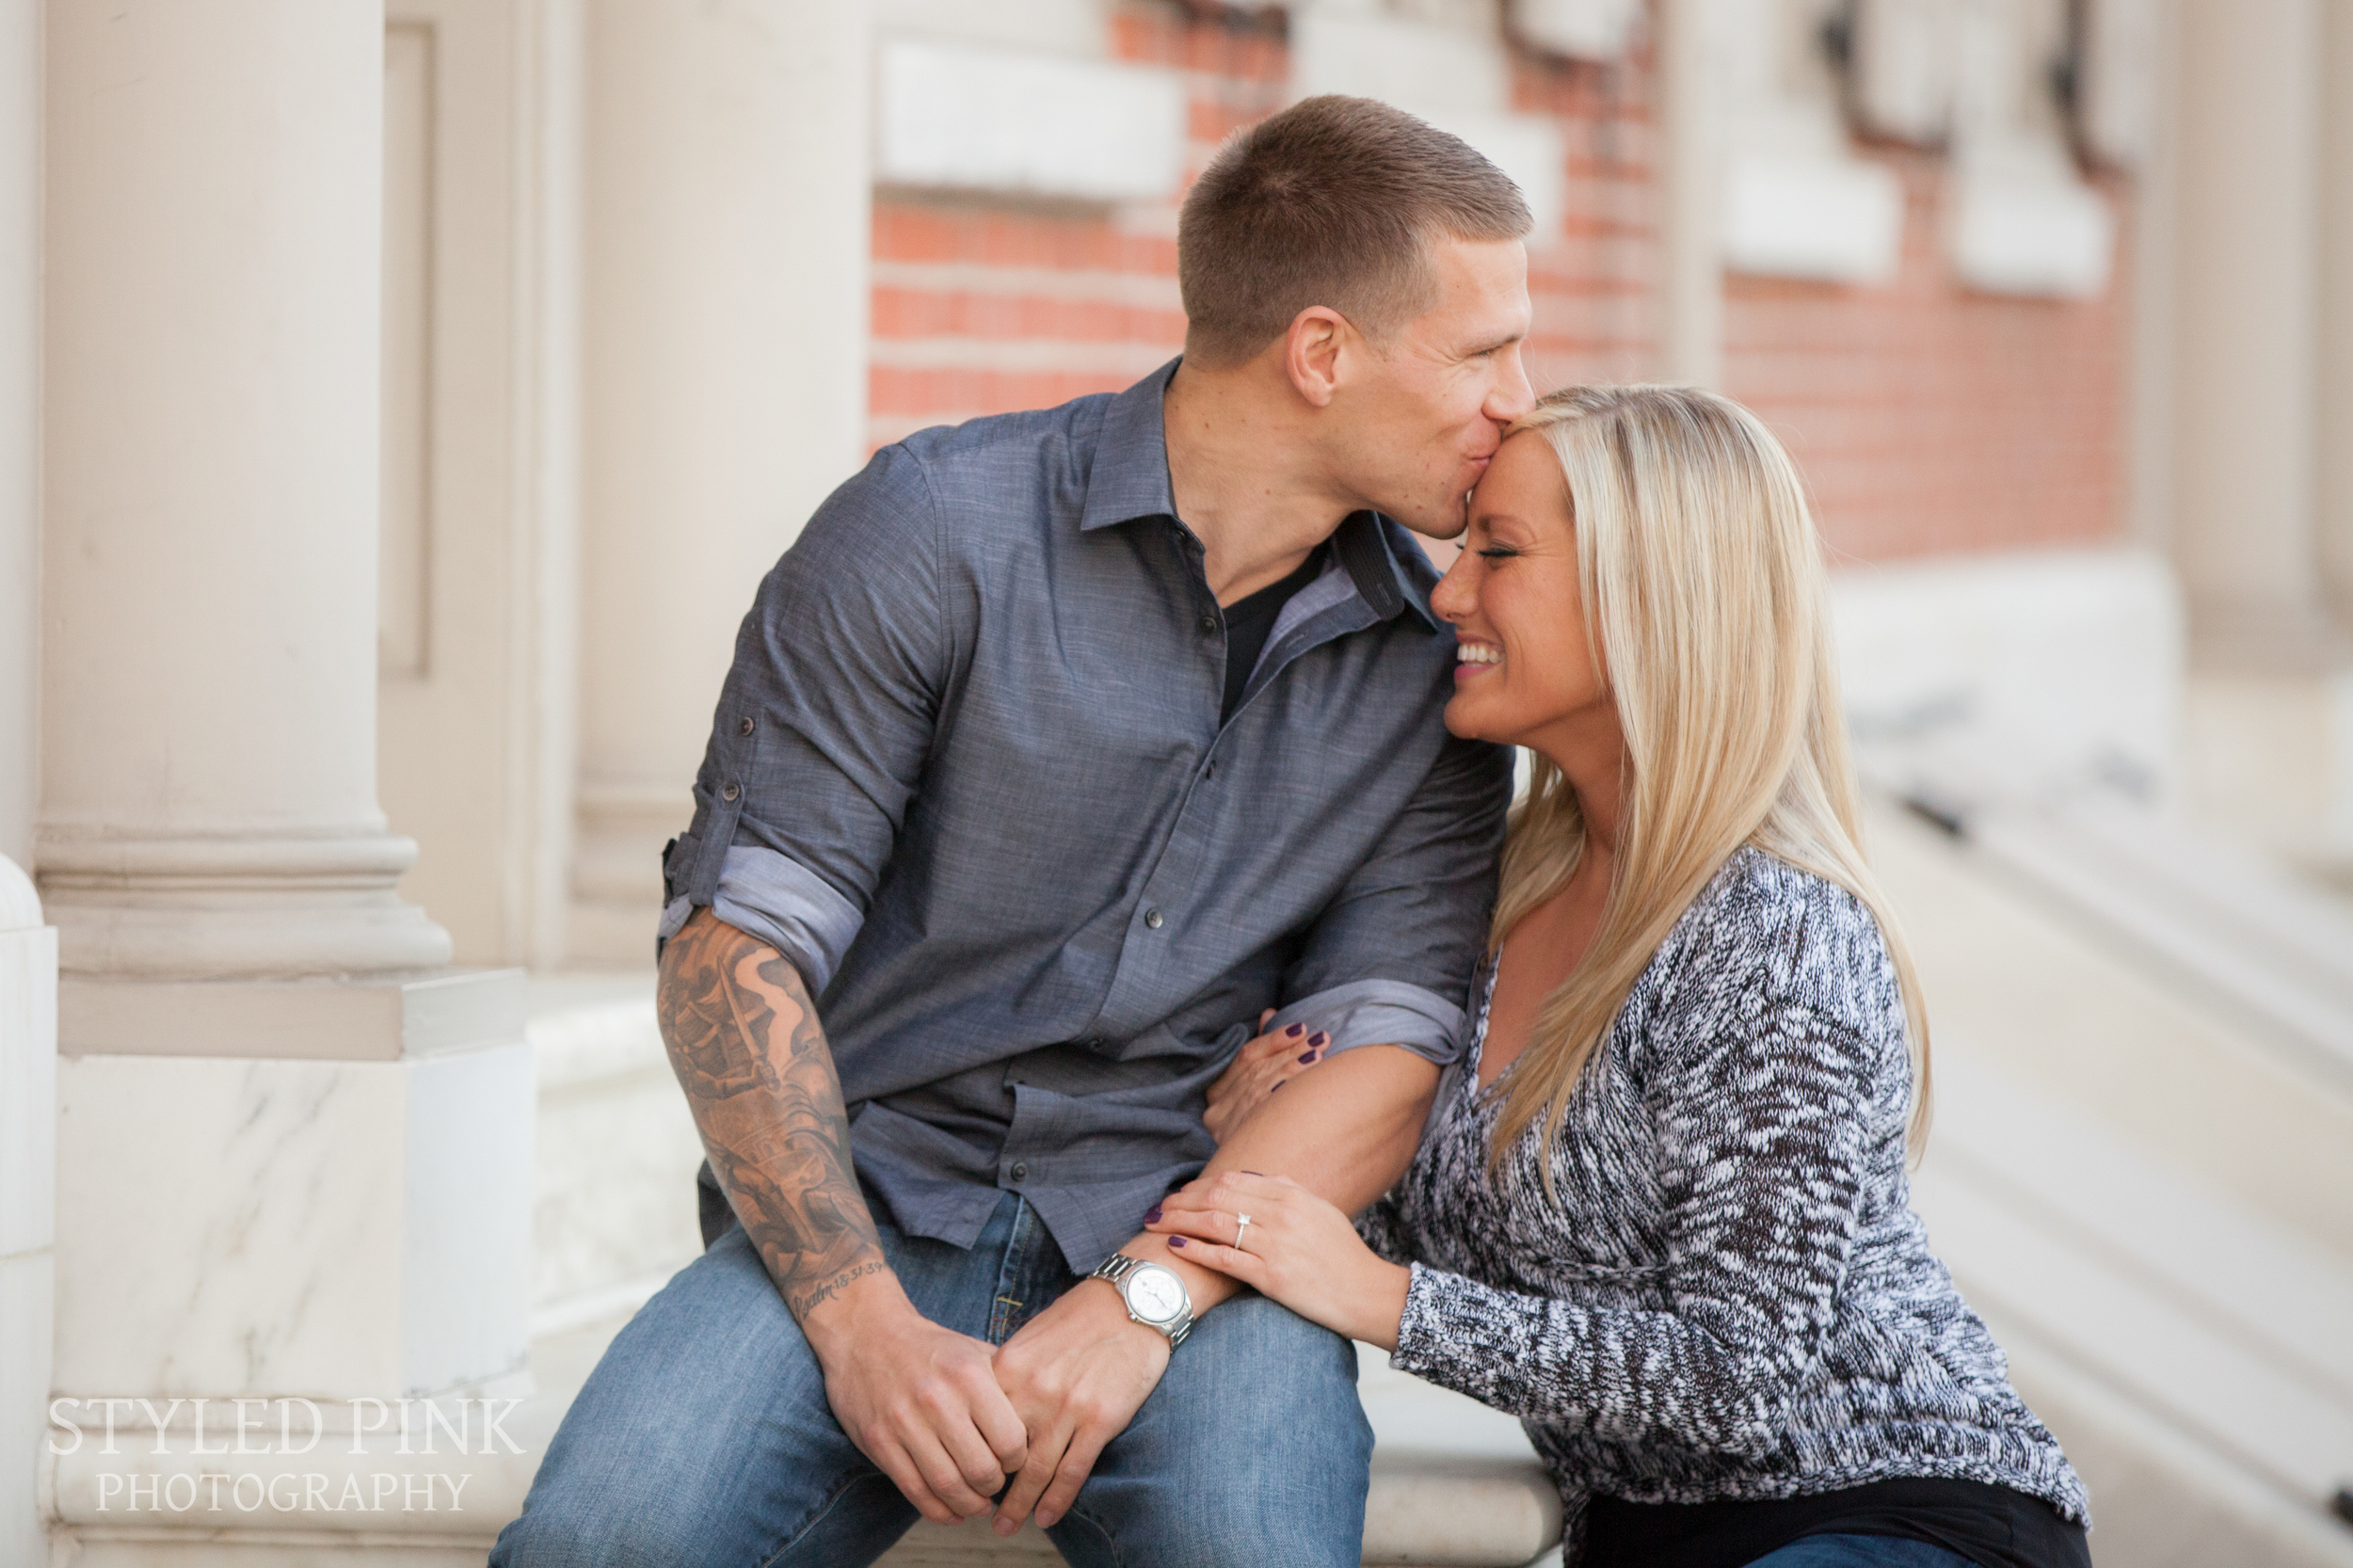 styled-pink-photography-penns-landing-engagement-9